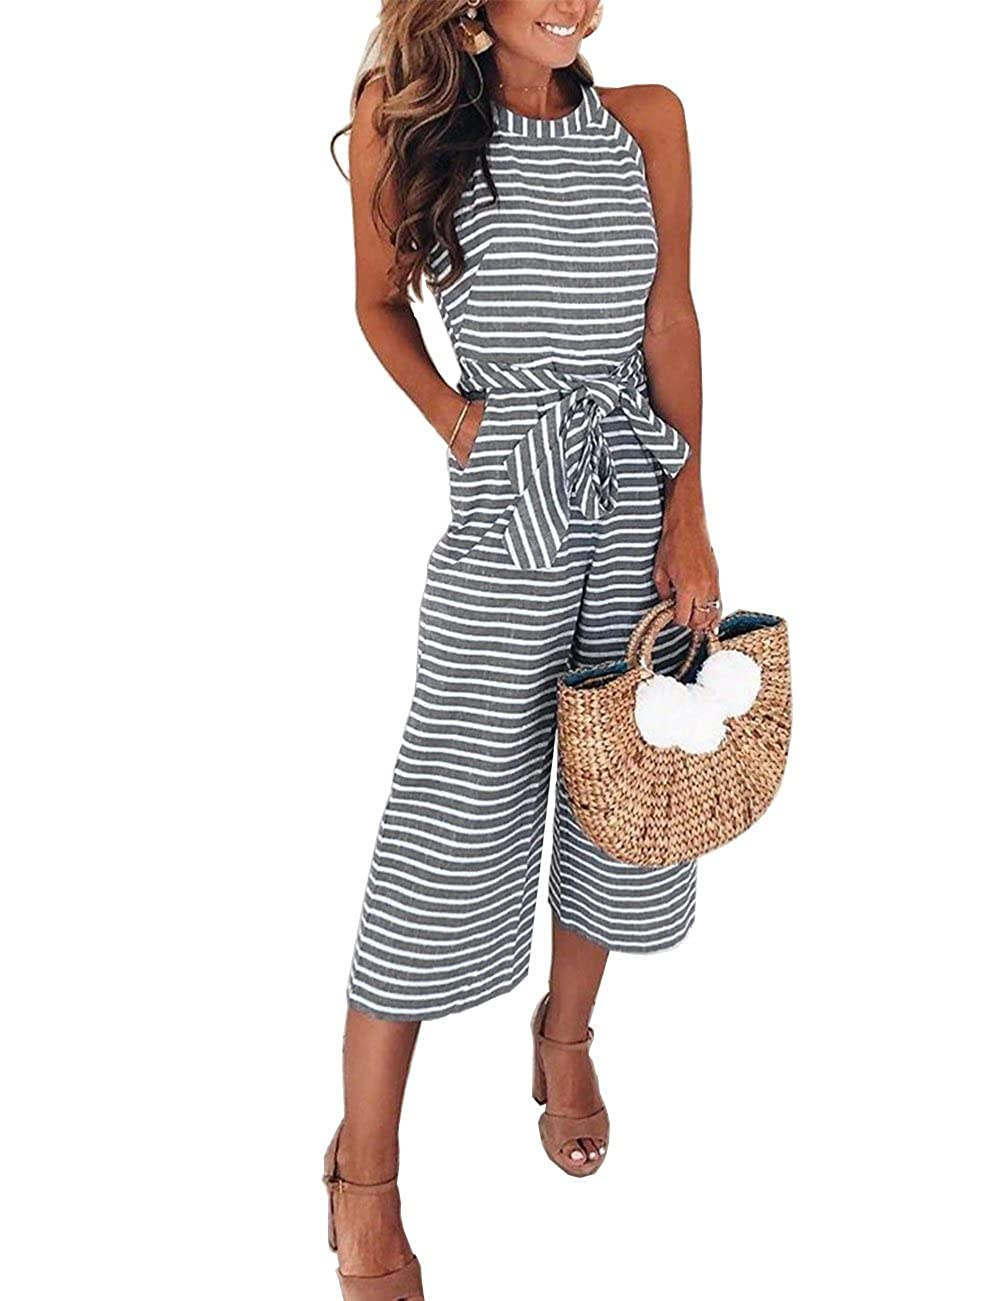 f6ff5d316fd FeelinGirl Women s Striped Jumpsuits High Waisted with Belt All in one  Playsuit  Amazon.co.uk  Clothing